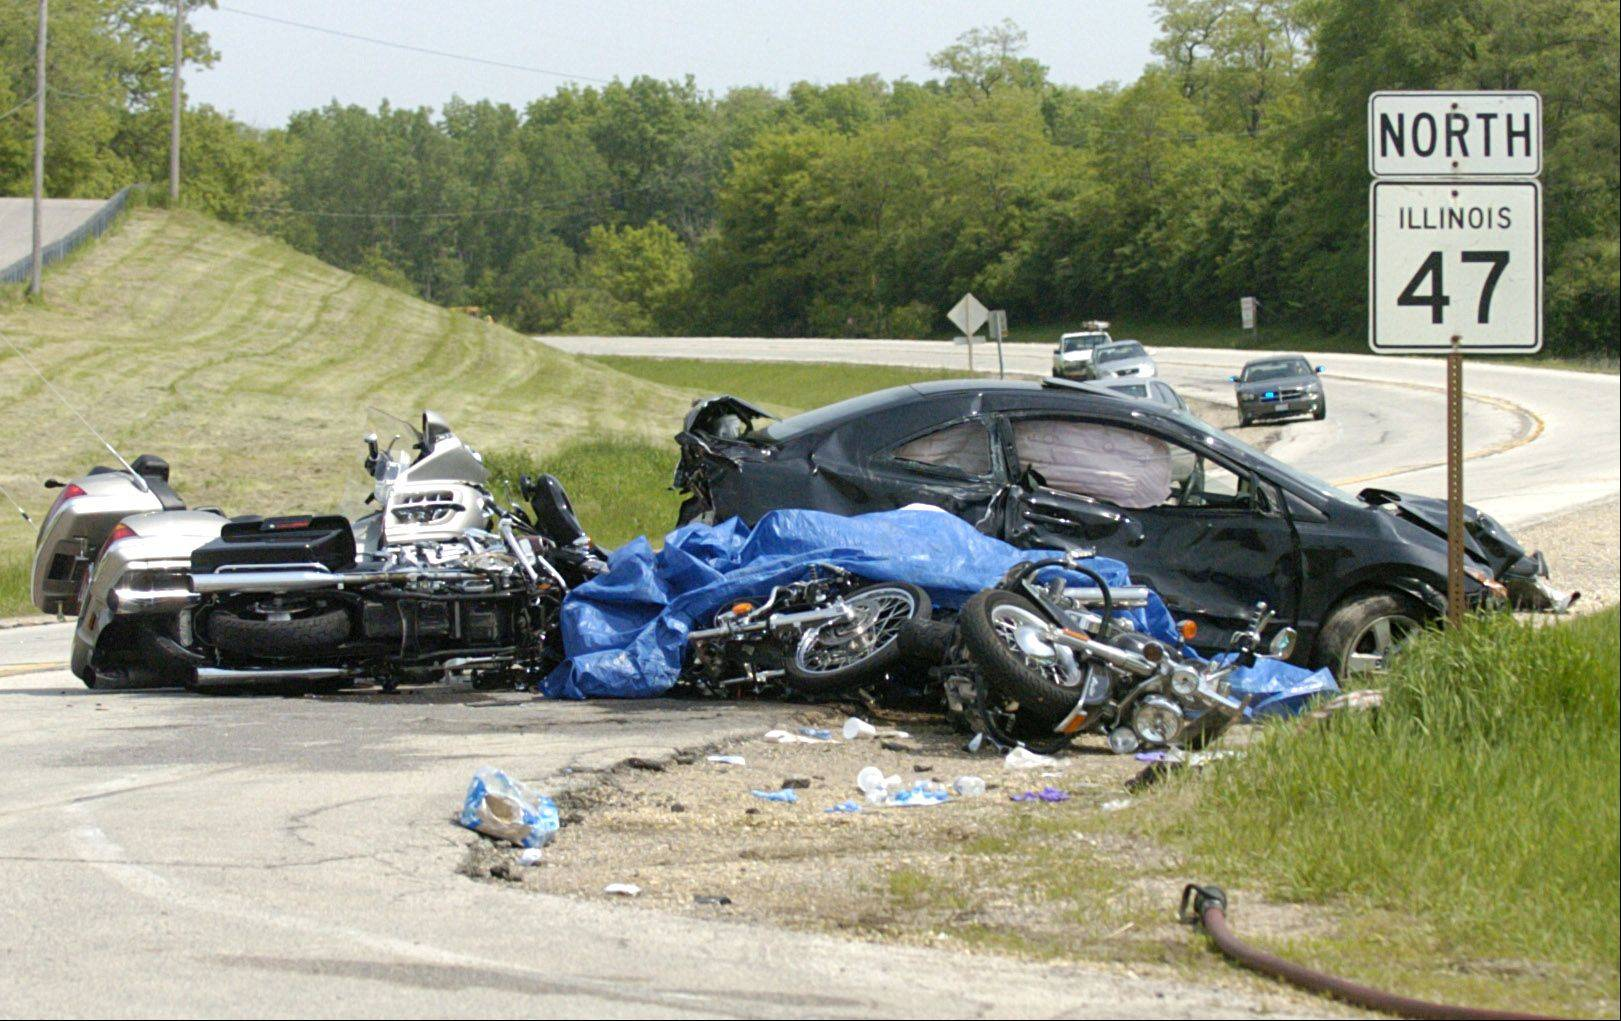 LAURA STOECKER/lstoecker@dailyherald.com Wade and Denise Thomas were killed and a dozen others were injured in May 2009 on Route 47 just north of Smith Road in Blackberry Township.